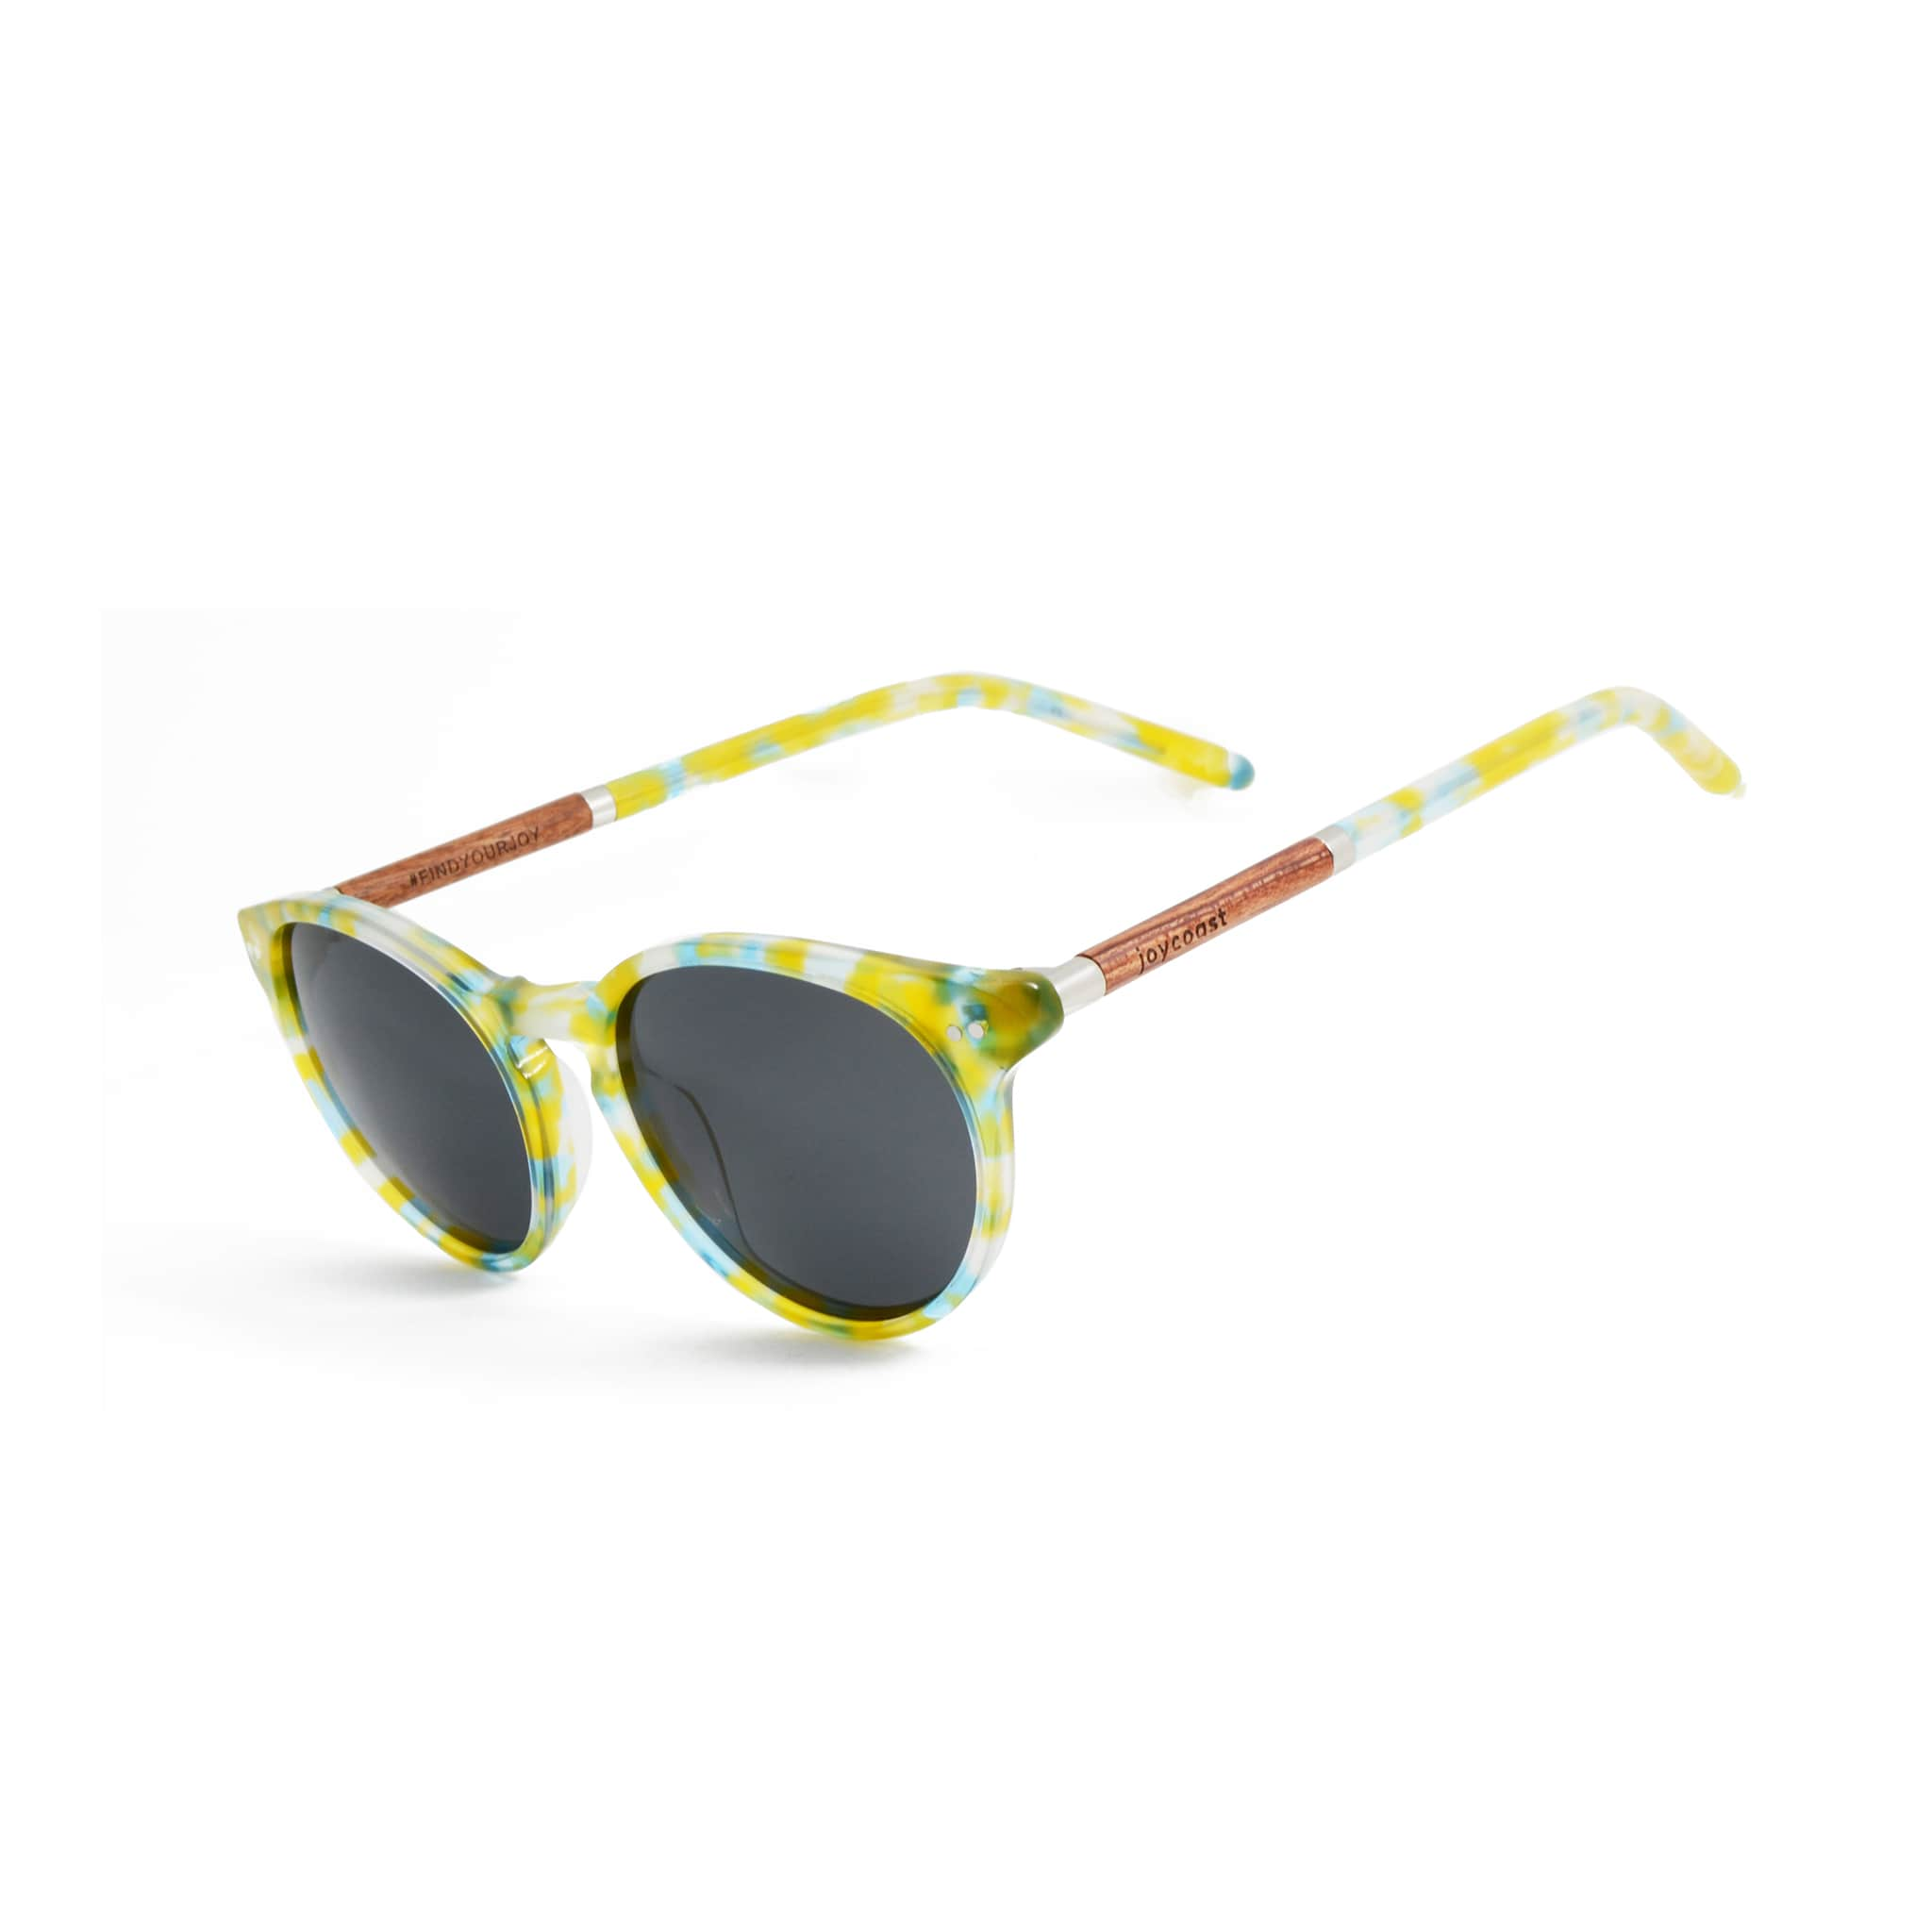 Rosewood Daisy Wooden Sunglasses - Wooden Watches and Sunglasses - Joycoast